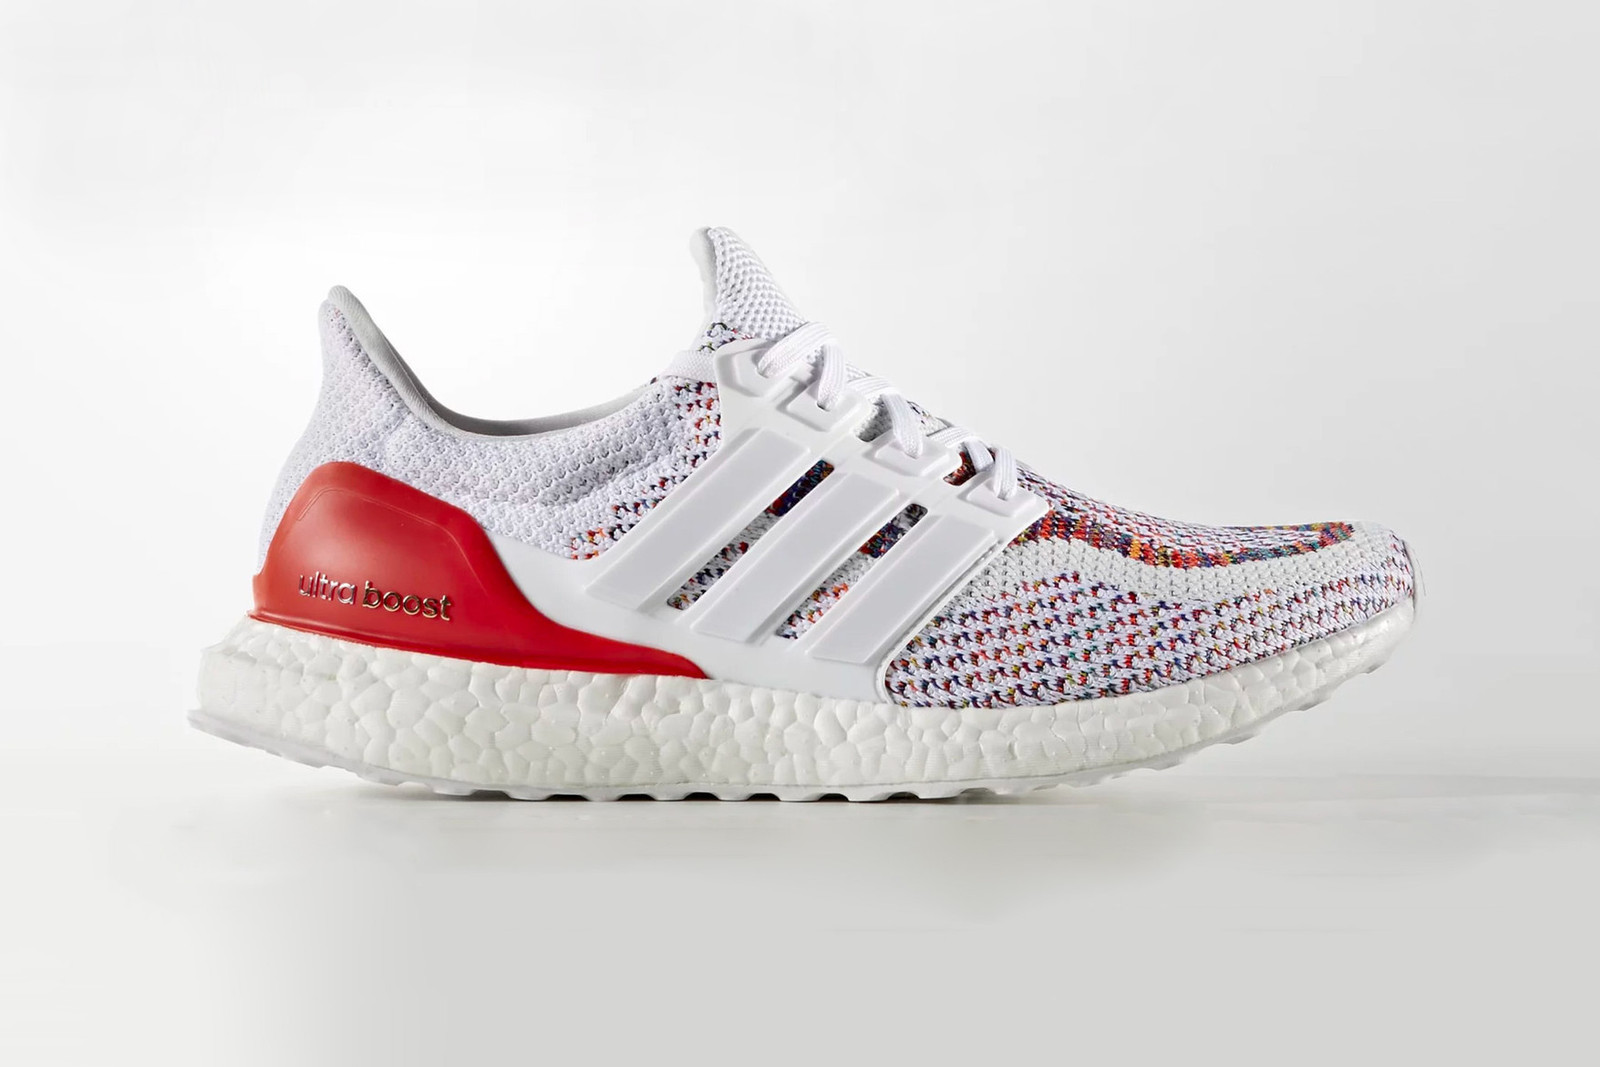 adidas Ultraboost Multicolor Rerelease Info sneakers running german footwear colorful white three stripes foot locker flat white red